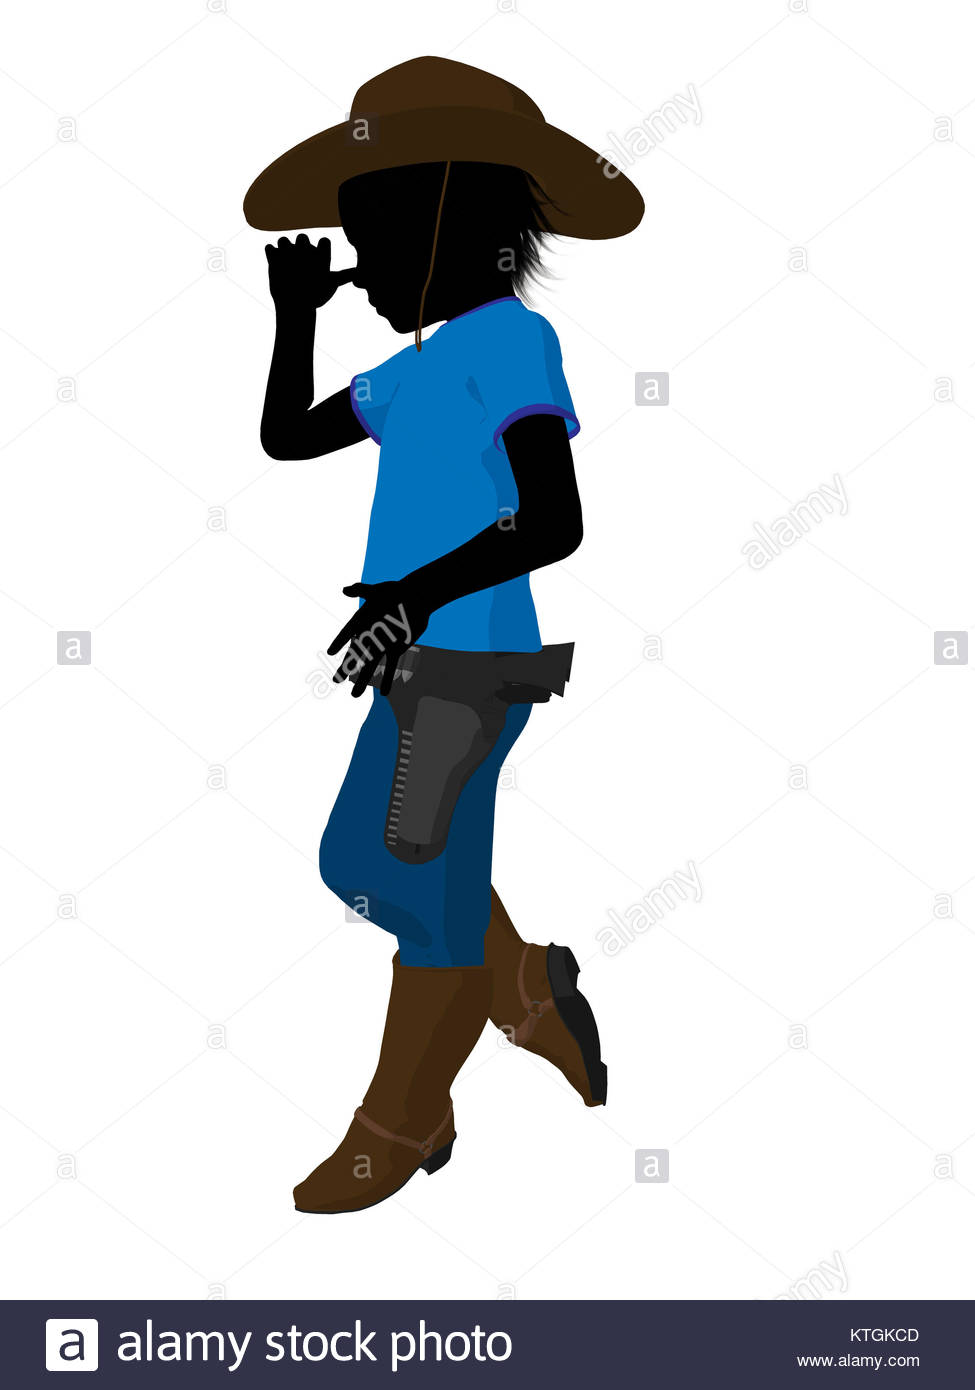 975x1390 Teen Cowboy Illustration Silhouette On A White Background Stock